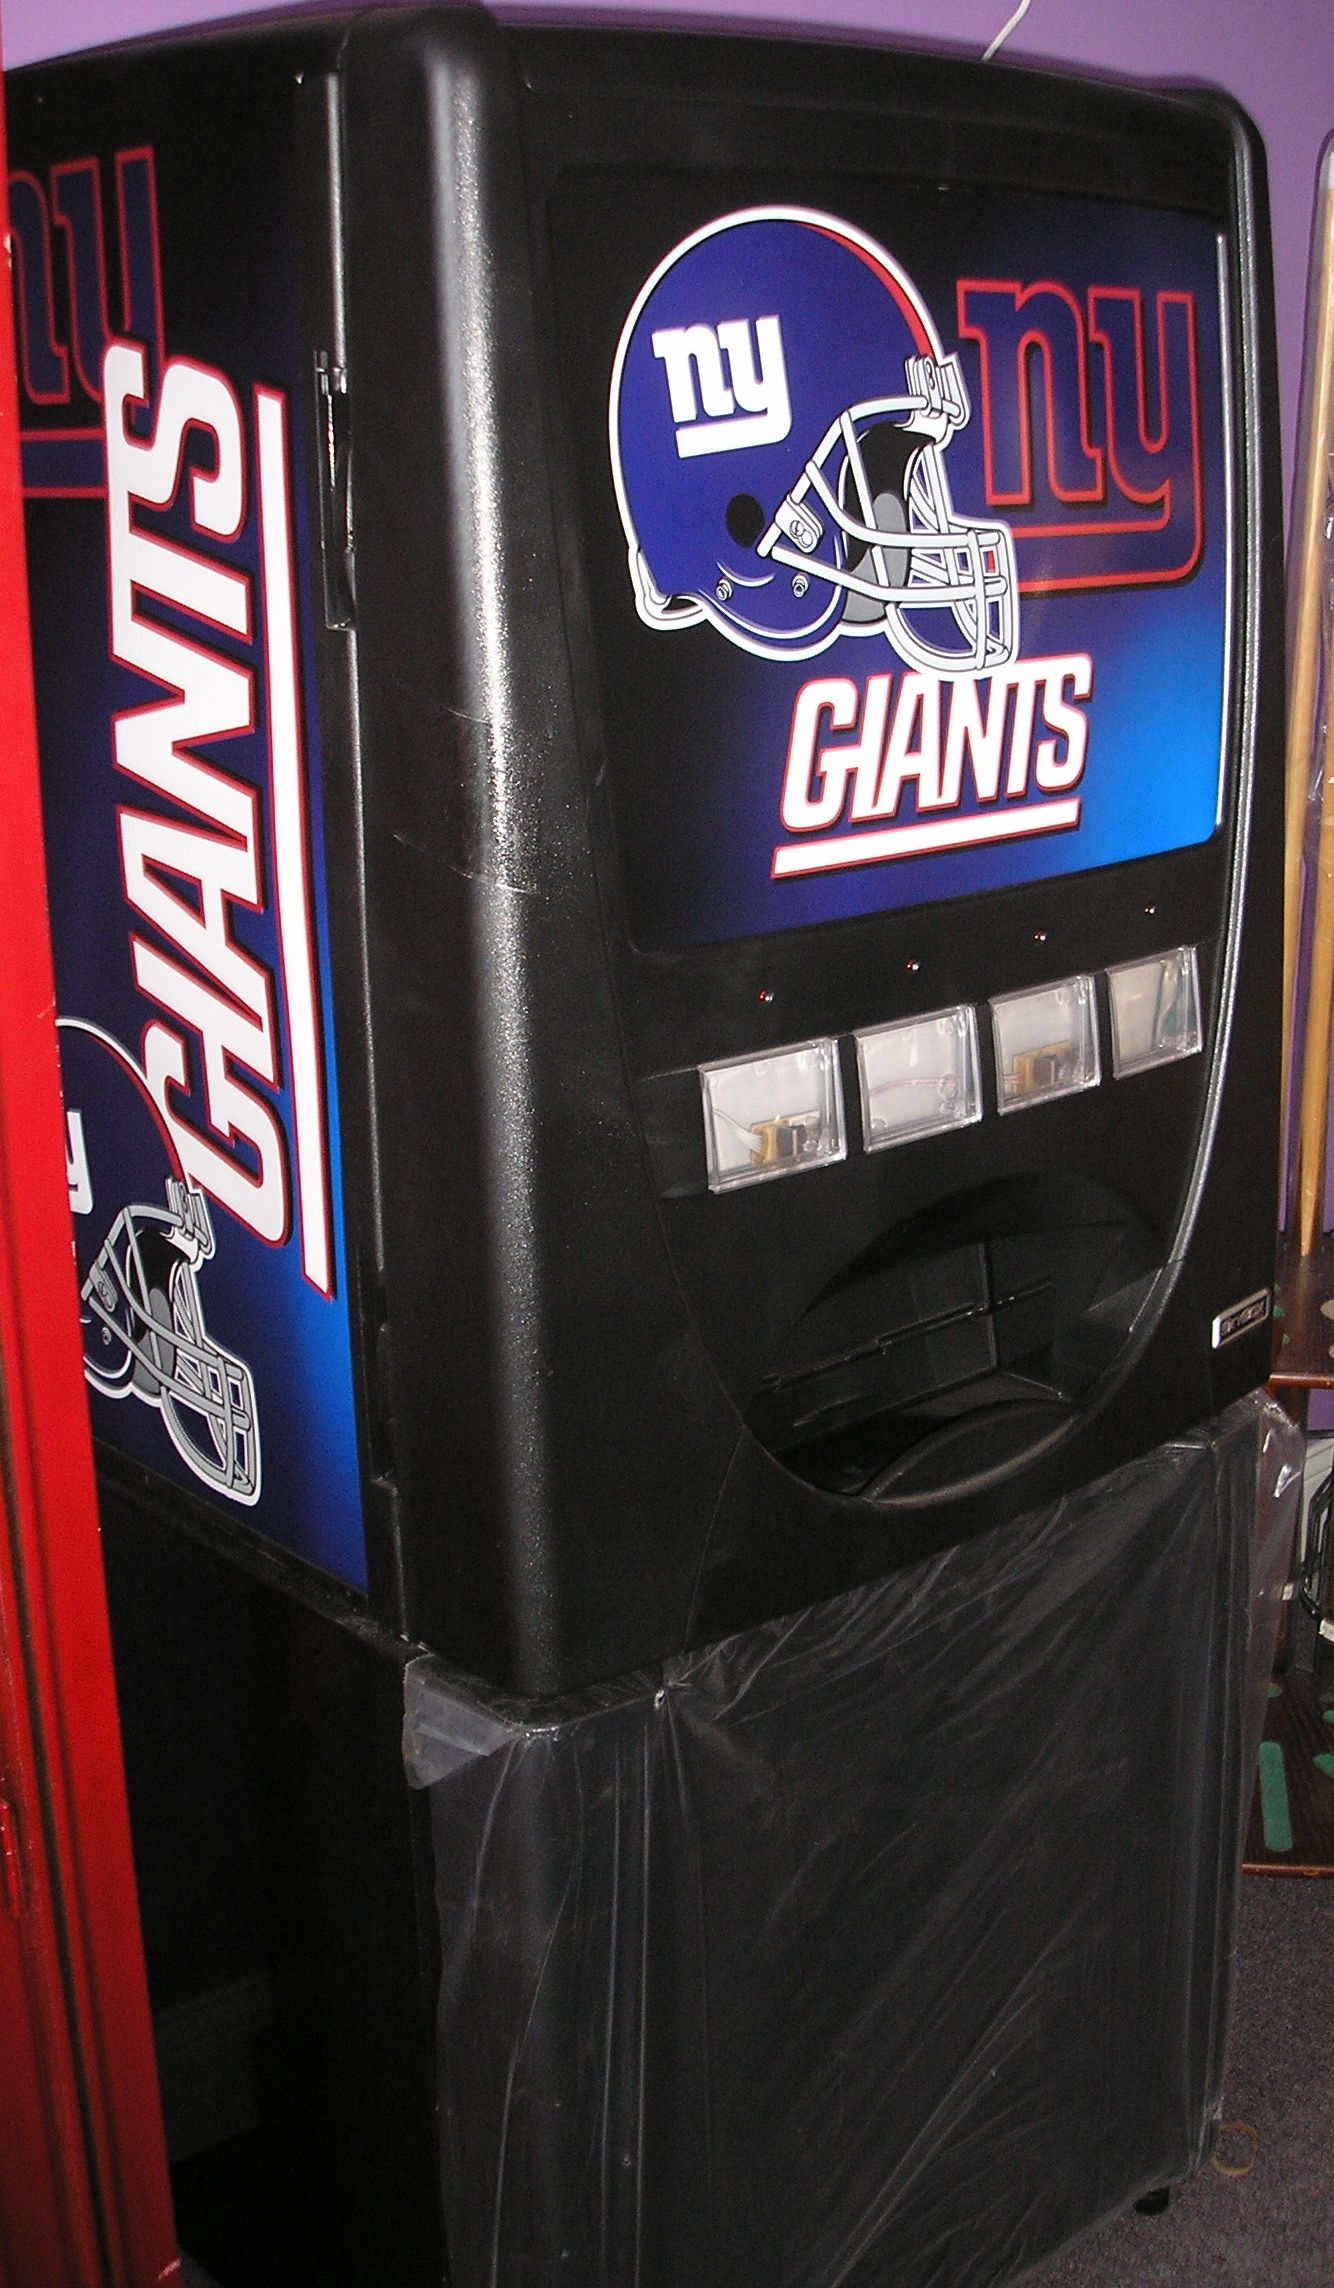 New York Giants Skybox Personal Beverage Vending Machine